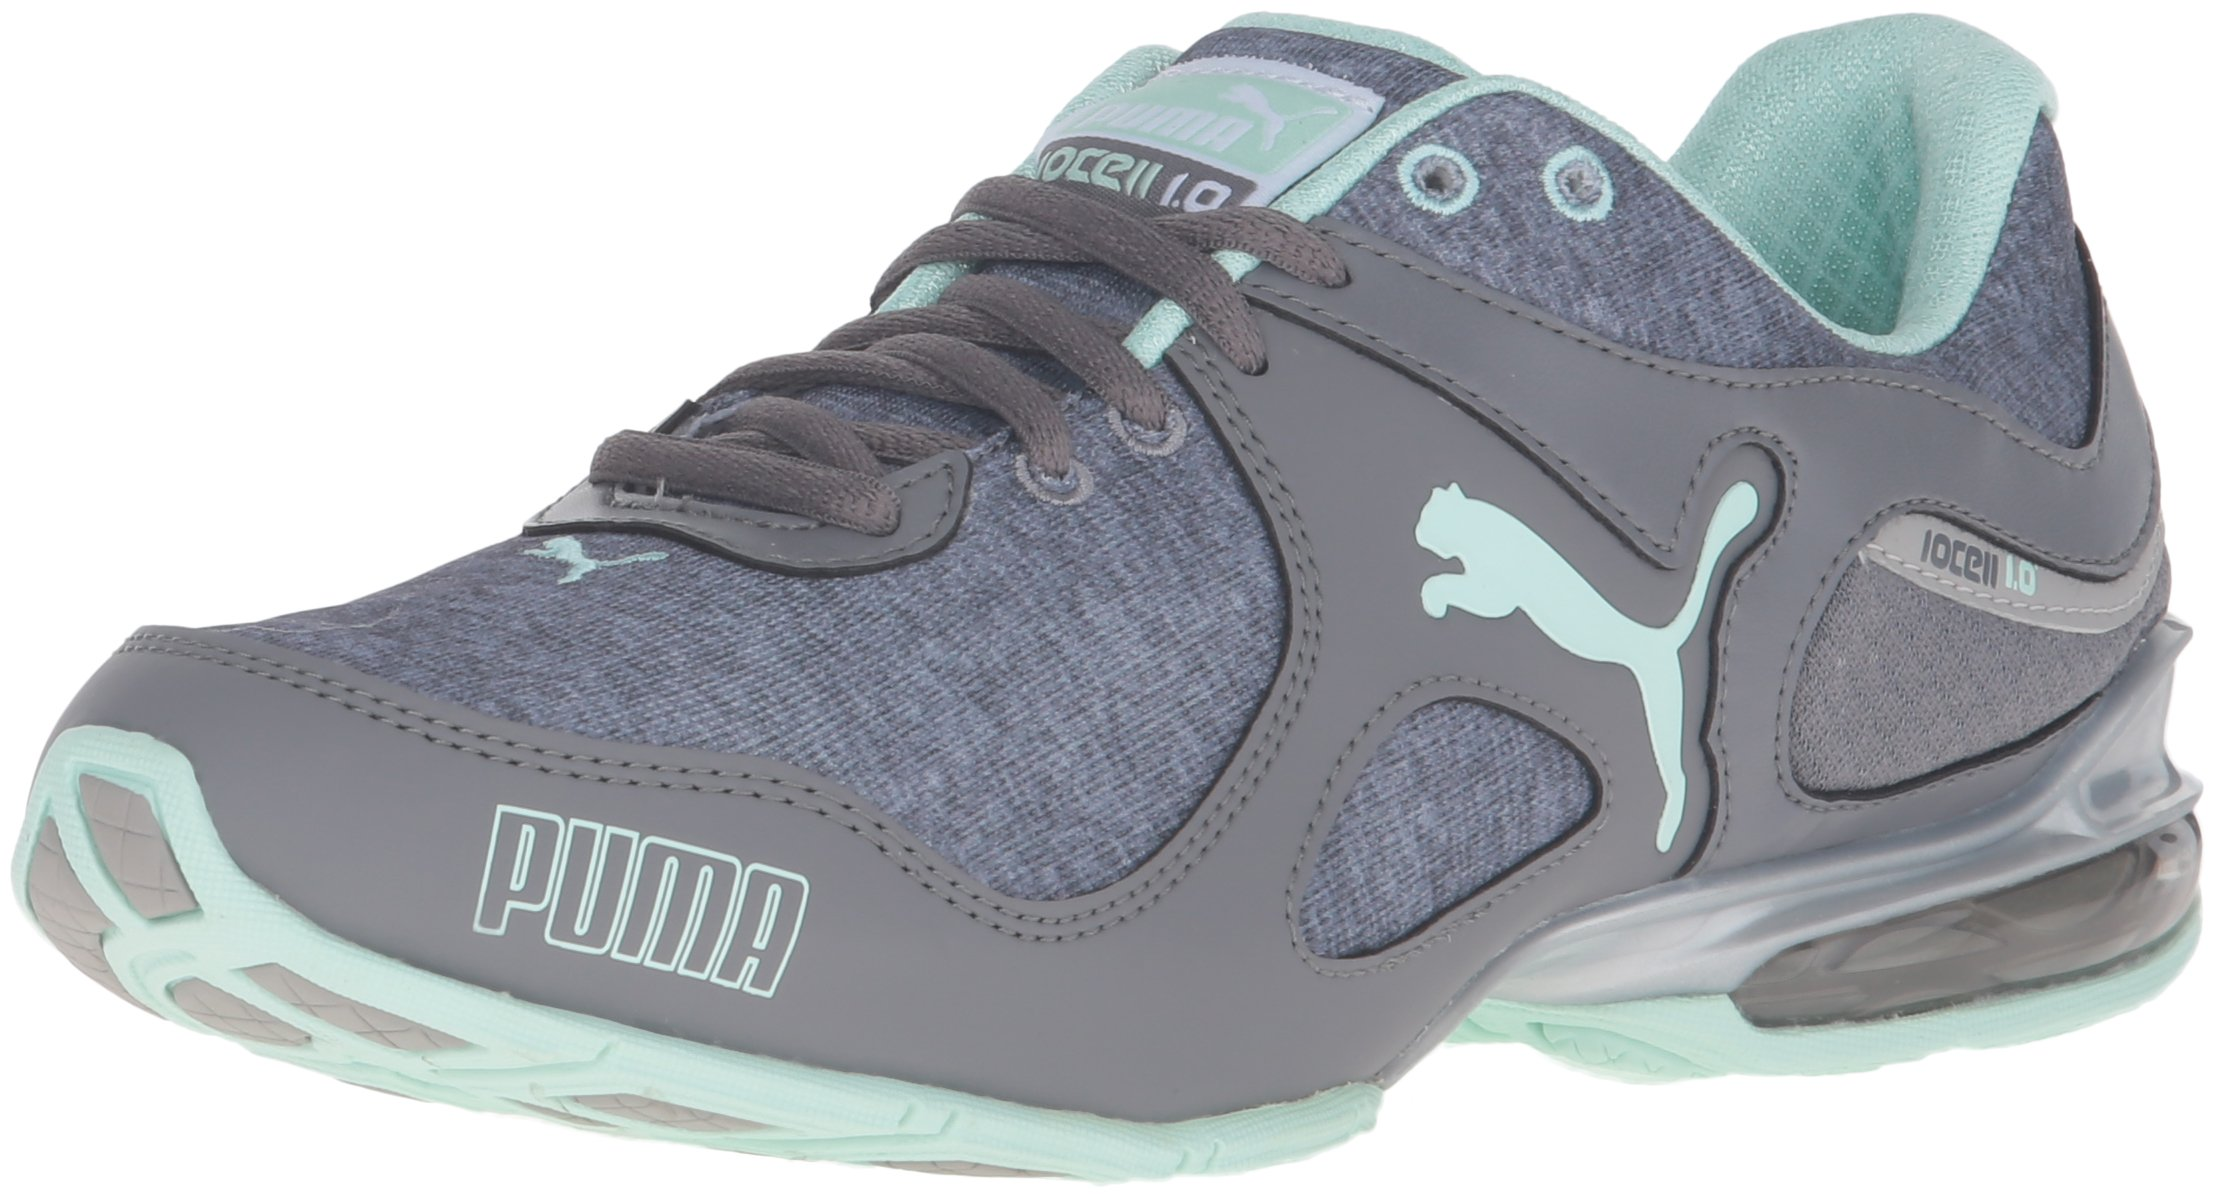 PUMA Women's Cell Riaze Heather Cross-Trainer Shoe, Steel Gray/Drizzle/Bay, 7 M US